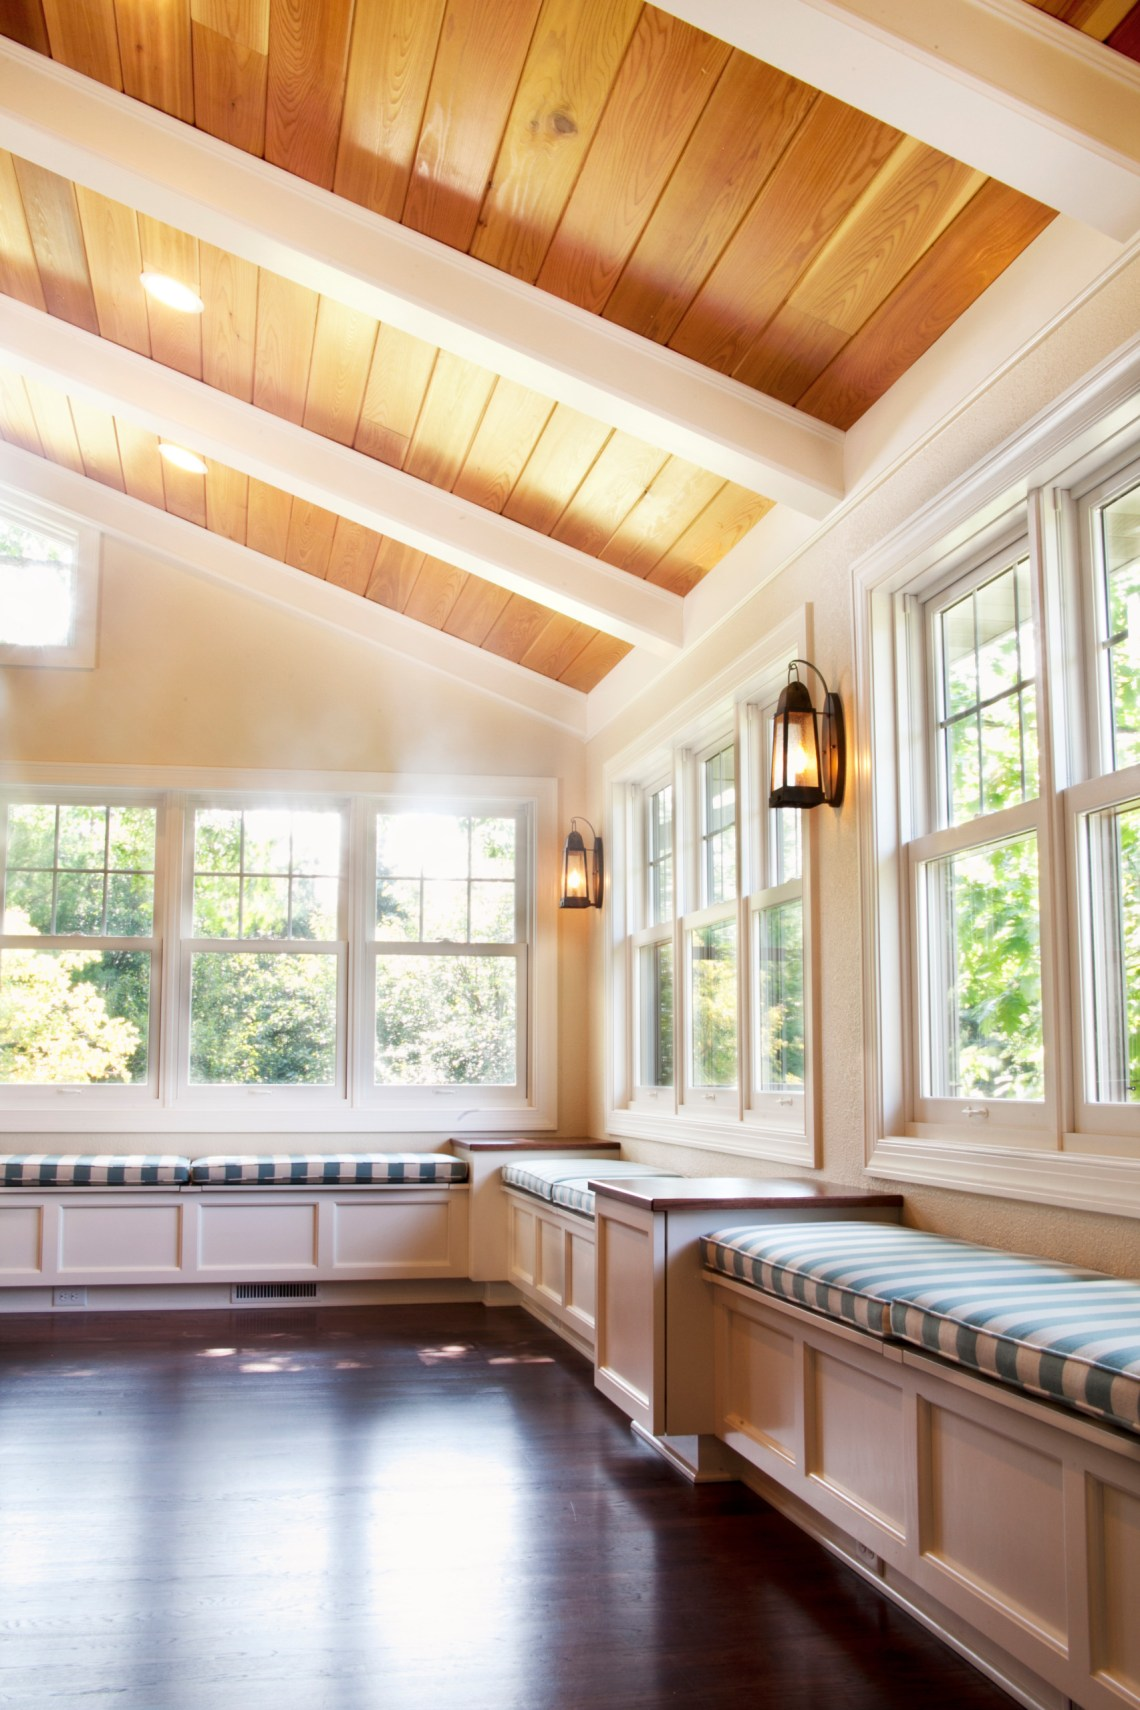 75 Beautiful Sunroom Pictures Ideas August 2021 Houzz